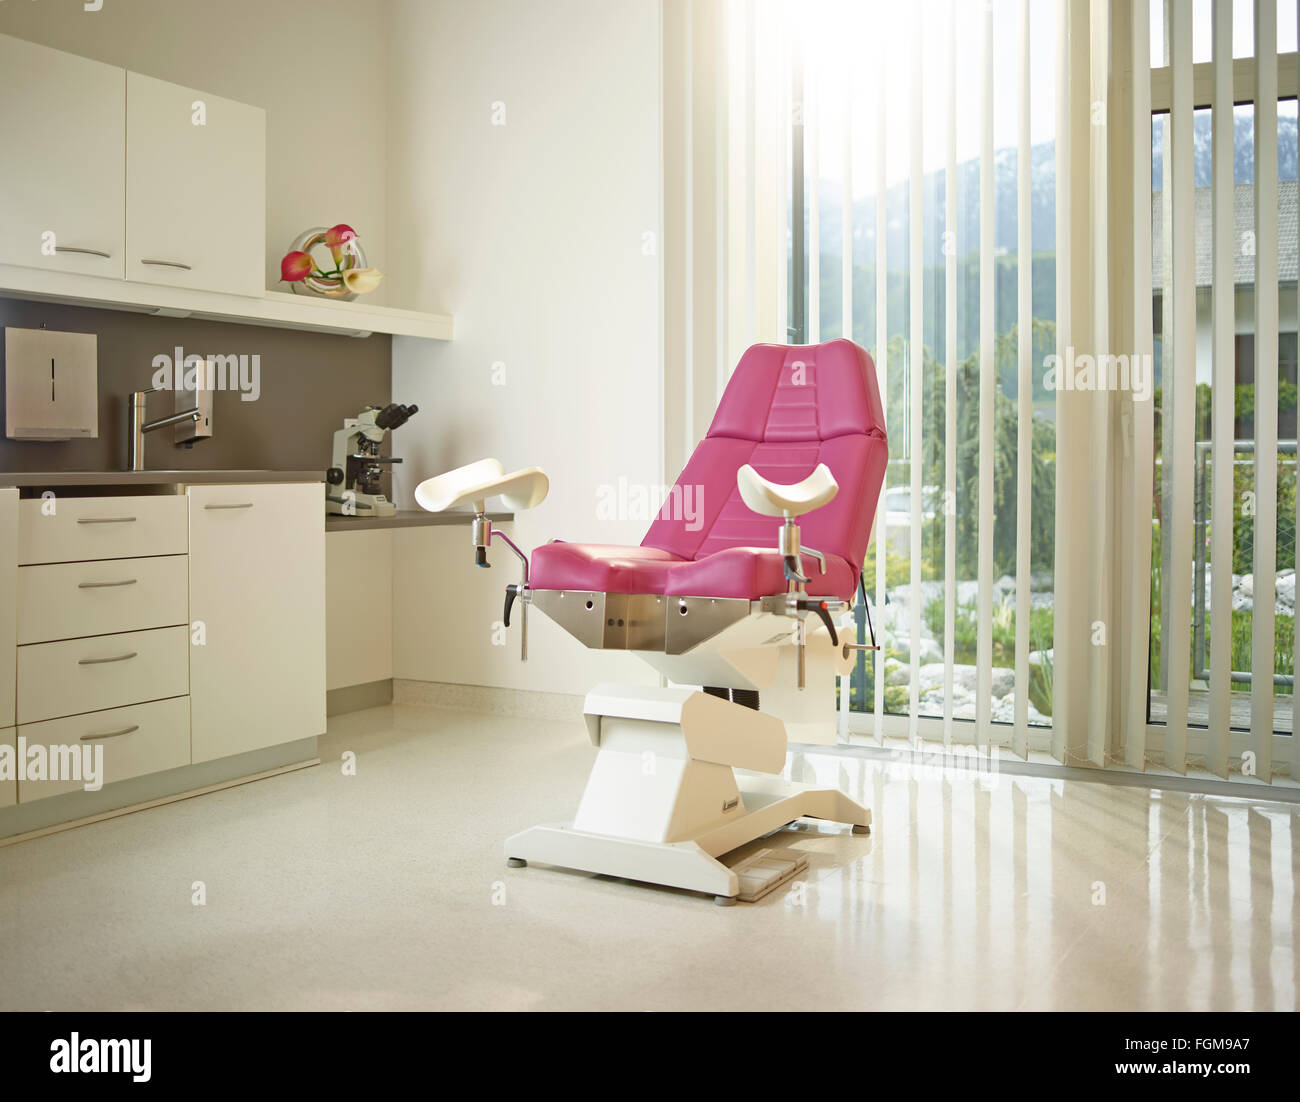 Gynaecological chair, practice, Austria - Stock Image